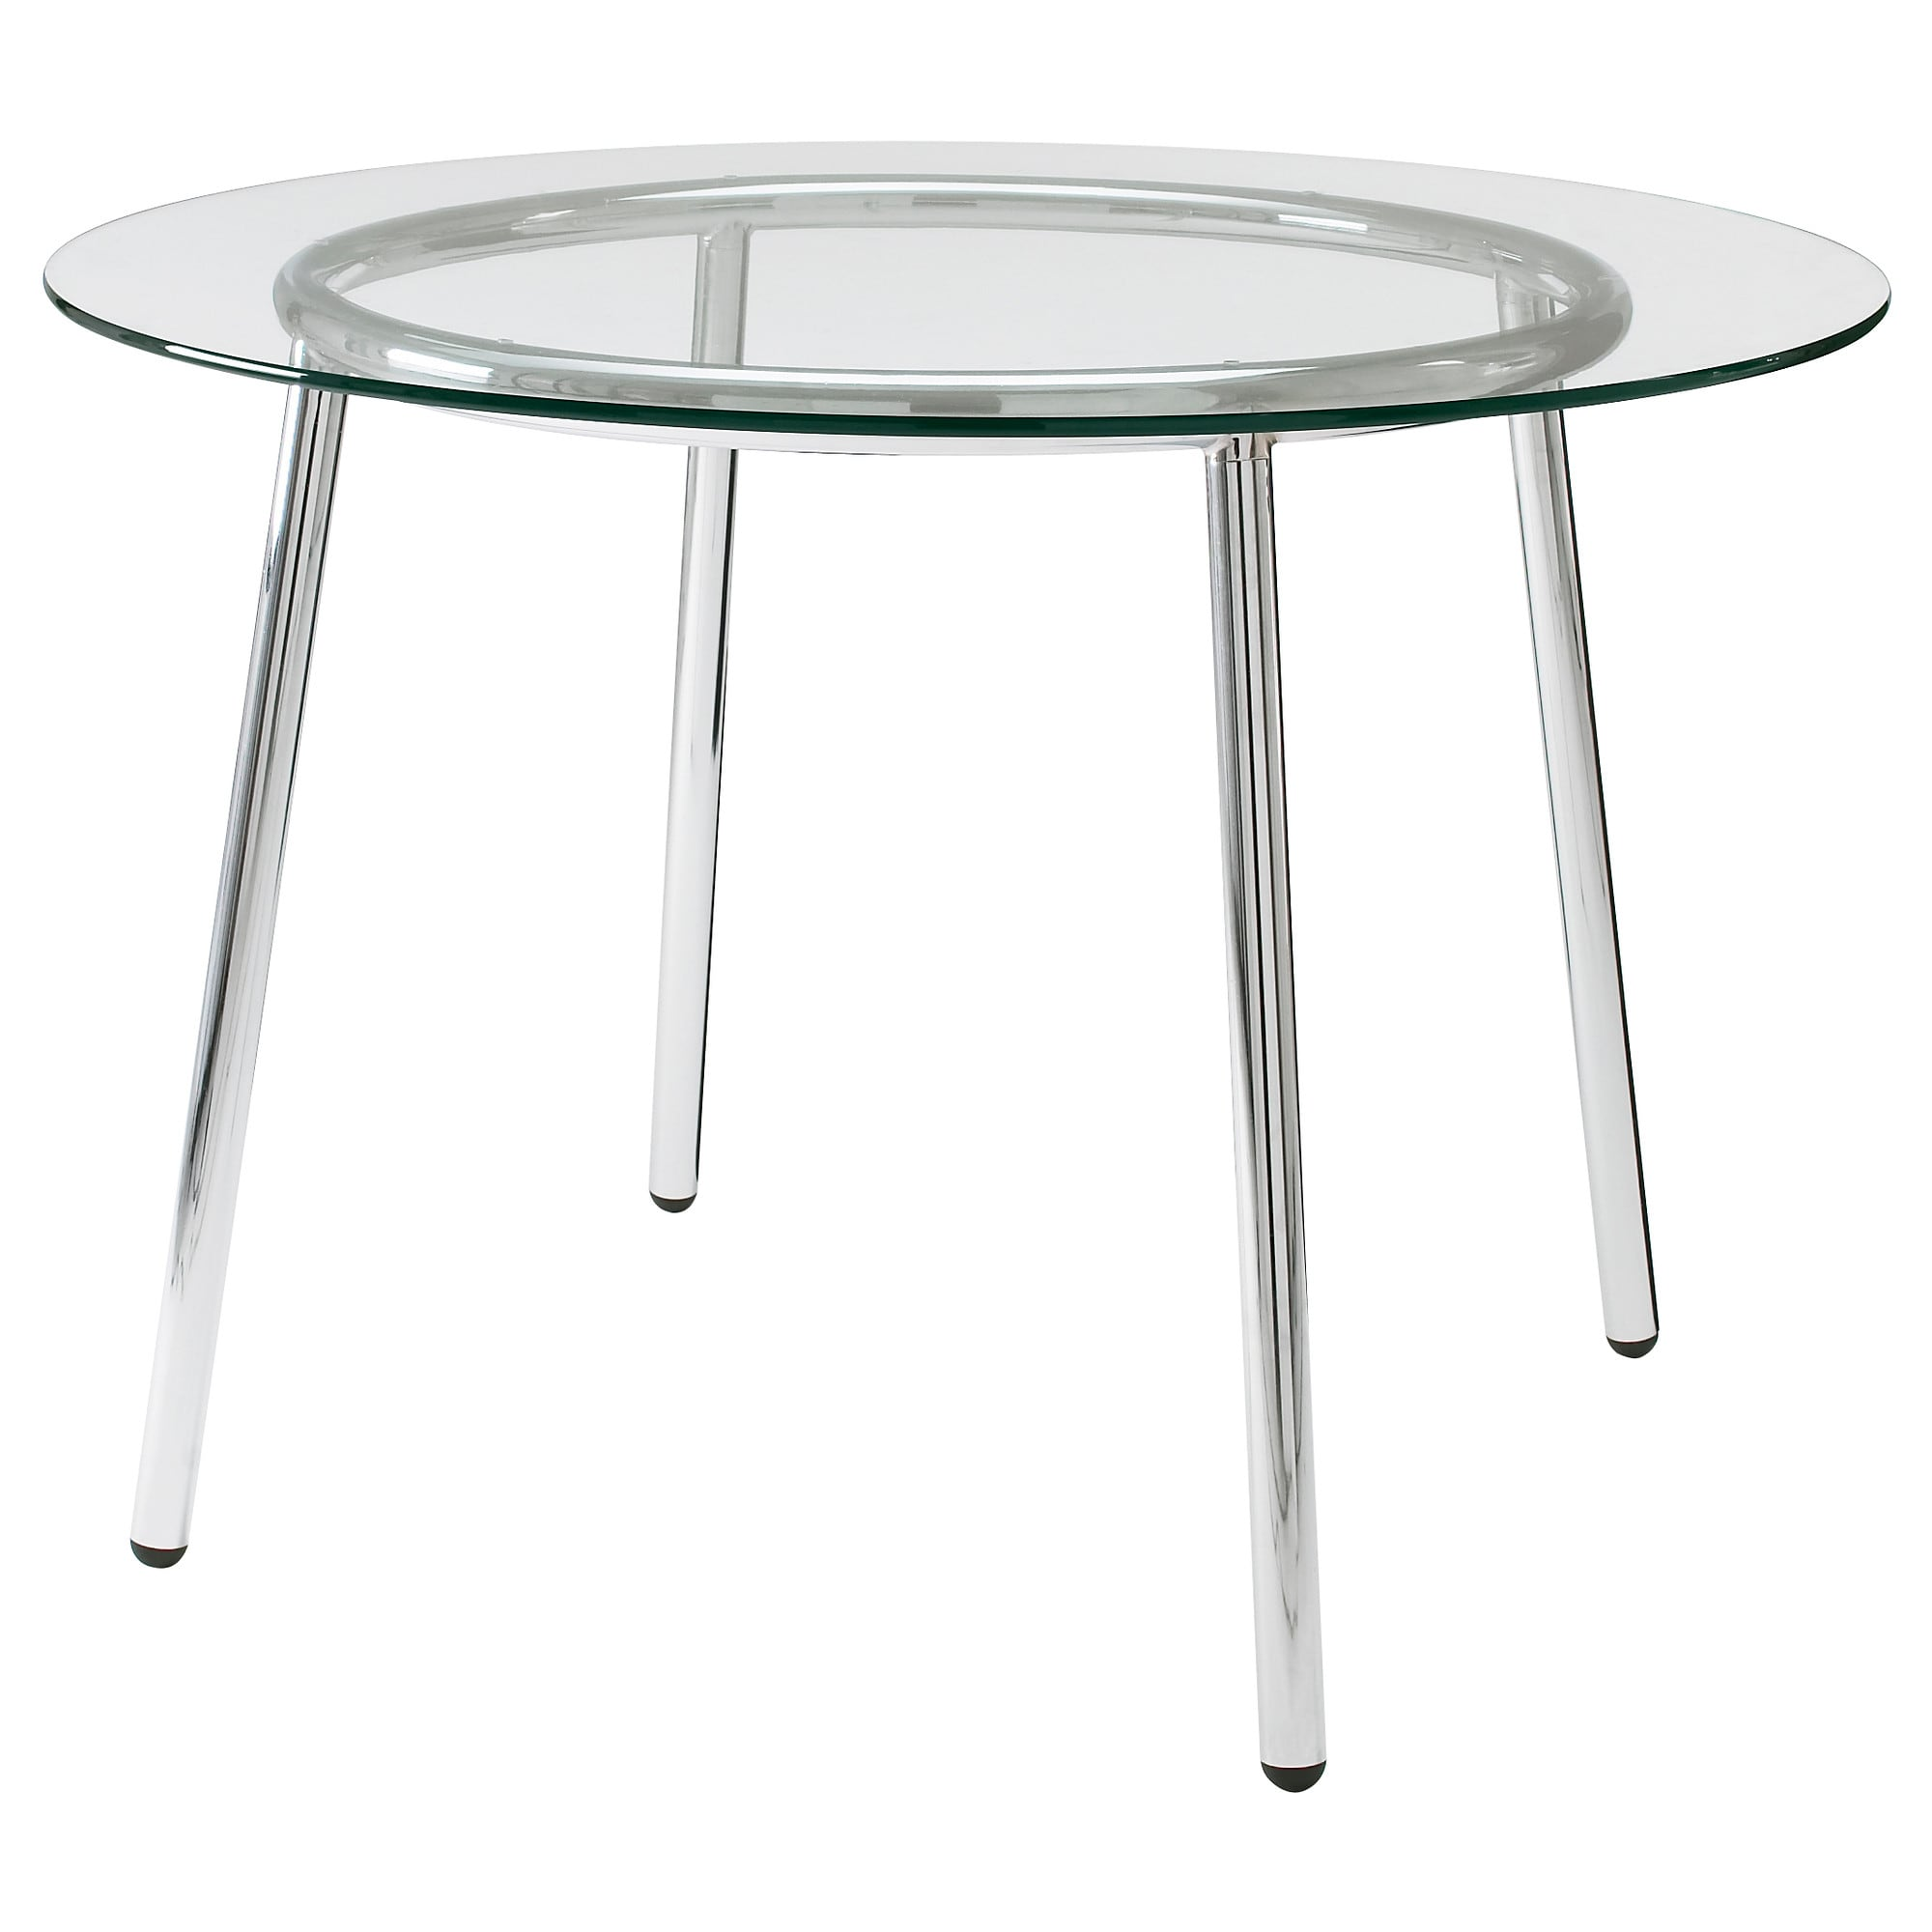 SALMI Table Glass/chrome-plated 105 cm - IKEA